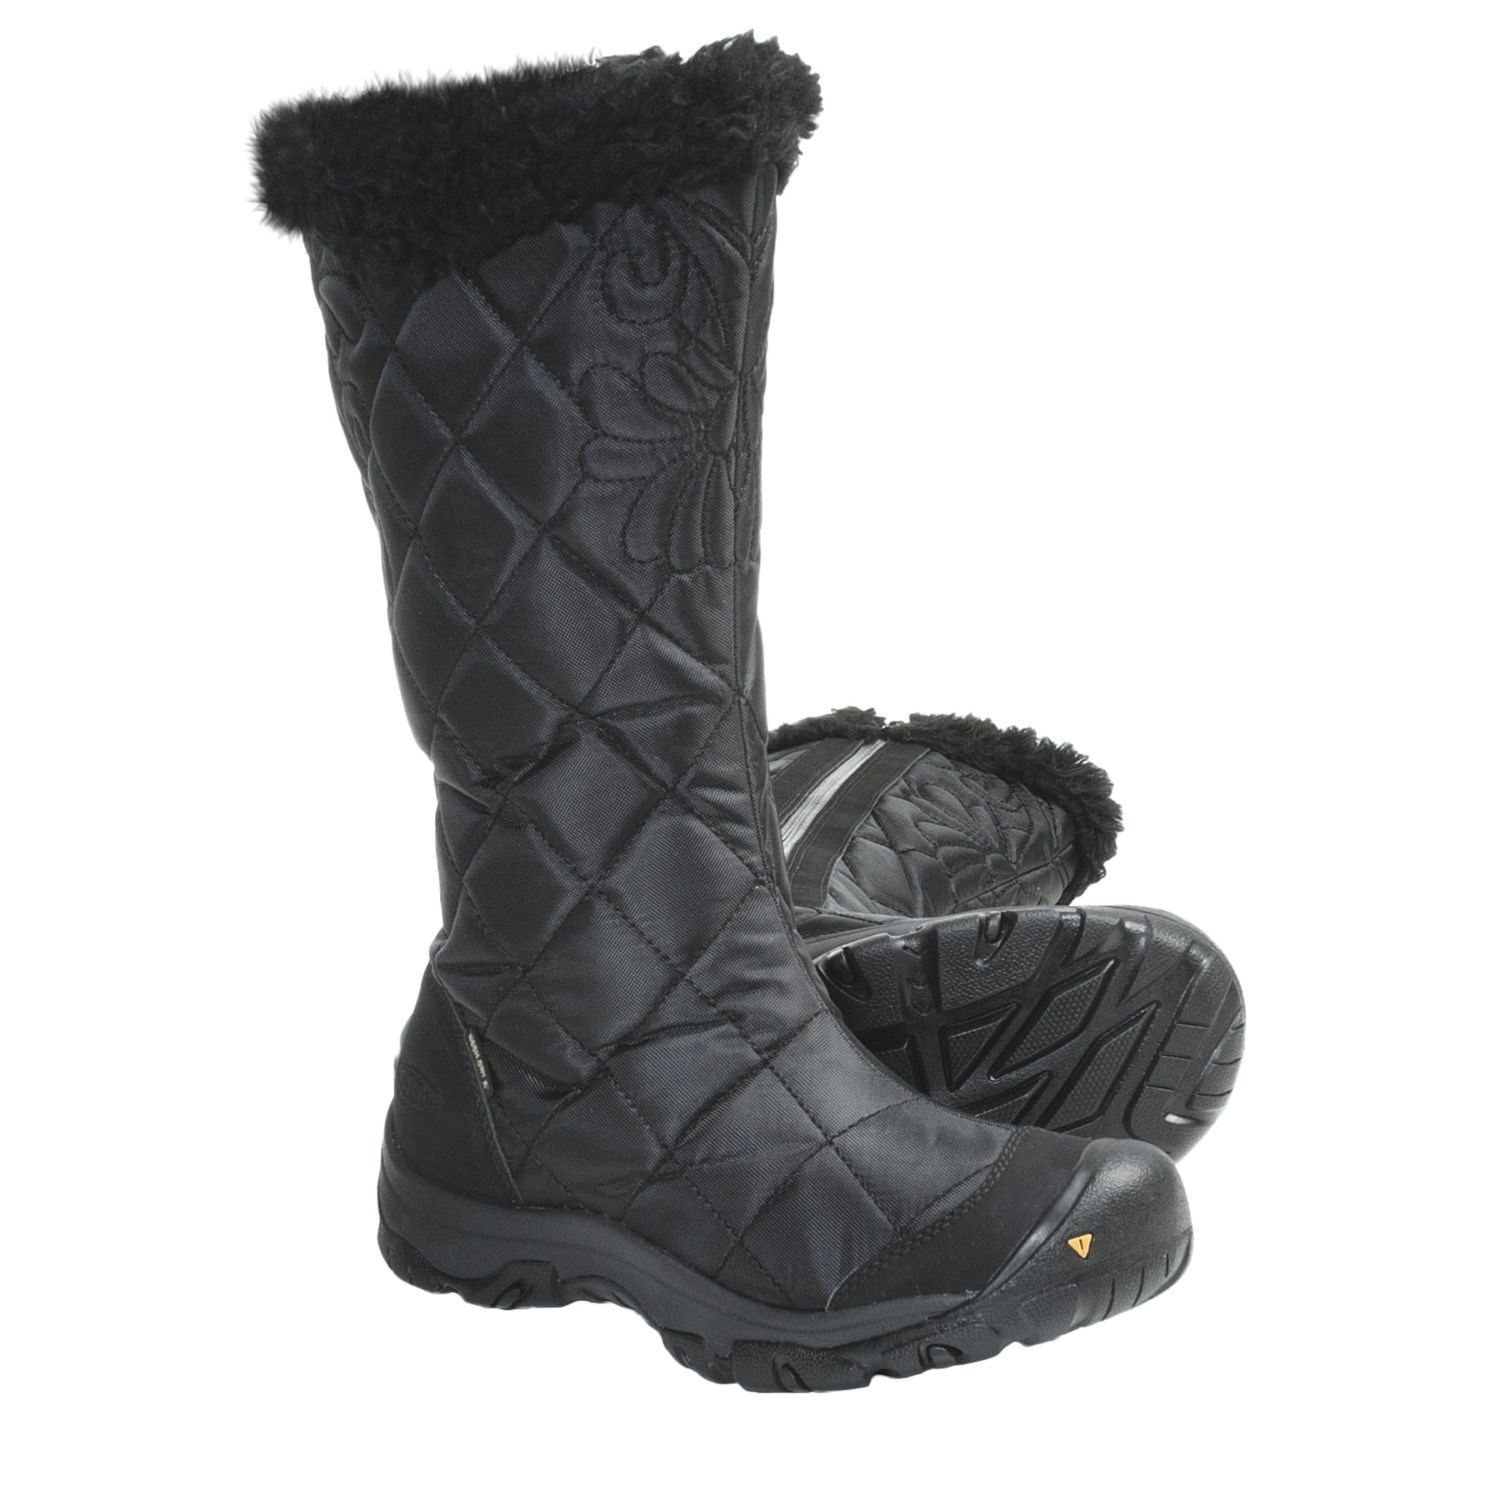 Keen Burlington High Snow Boots (For Women) - Save 30